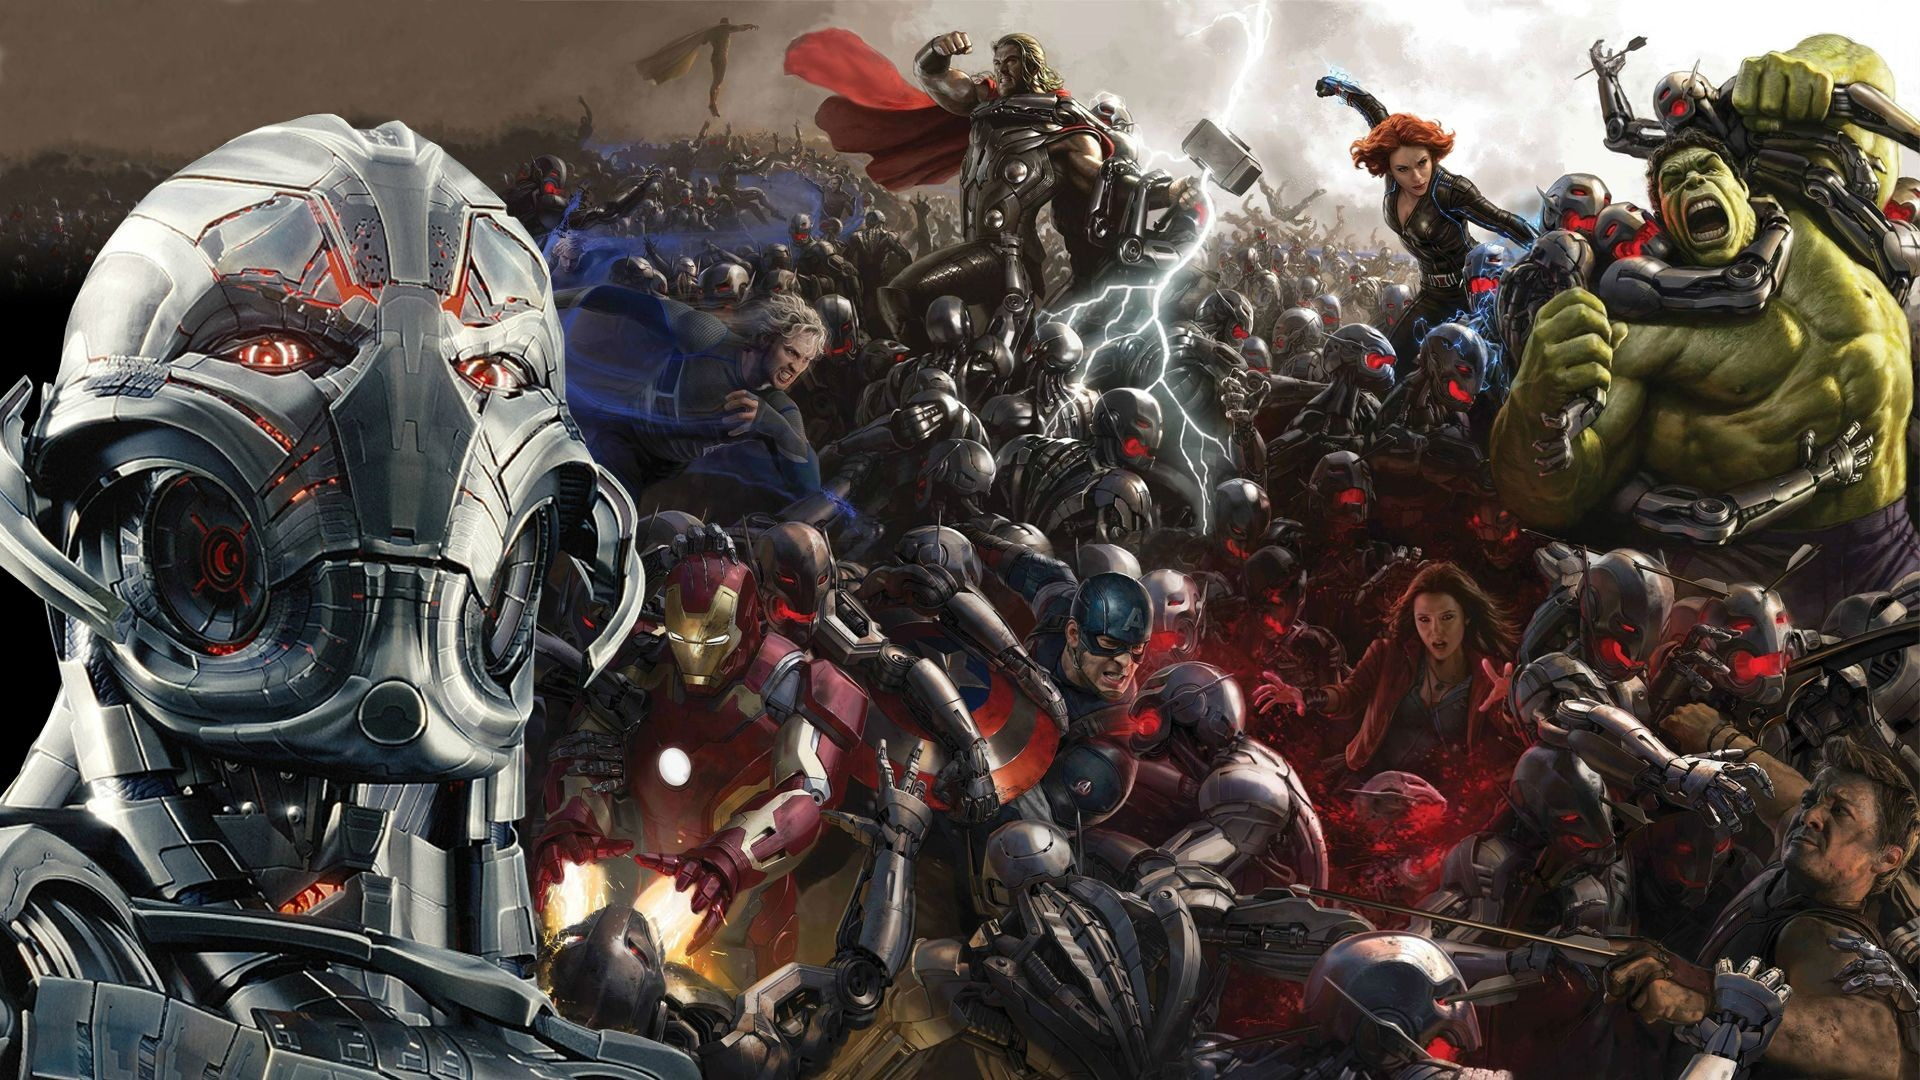 Could not find this Age of Ultron wallpaper for my resolution, decided to  combine two of them [1920×1080] …